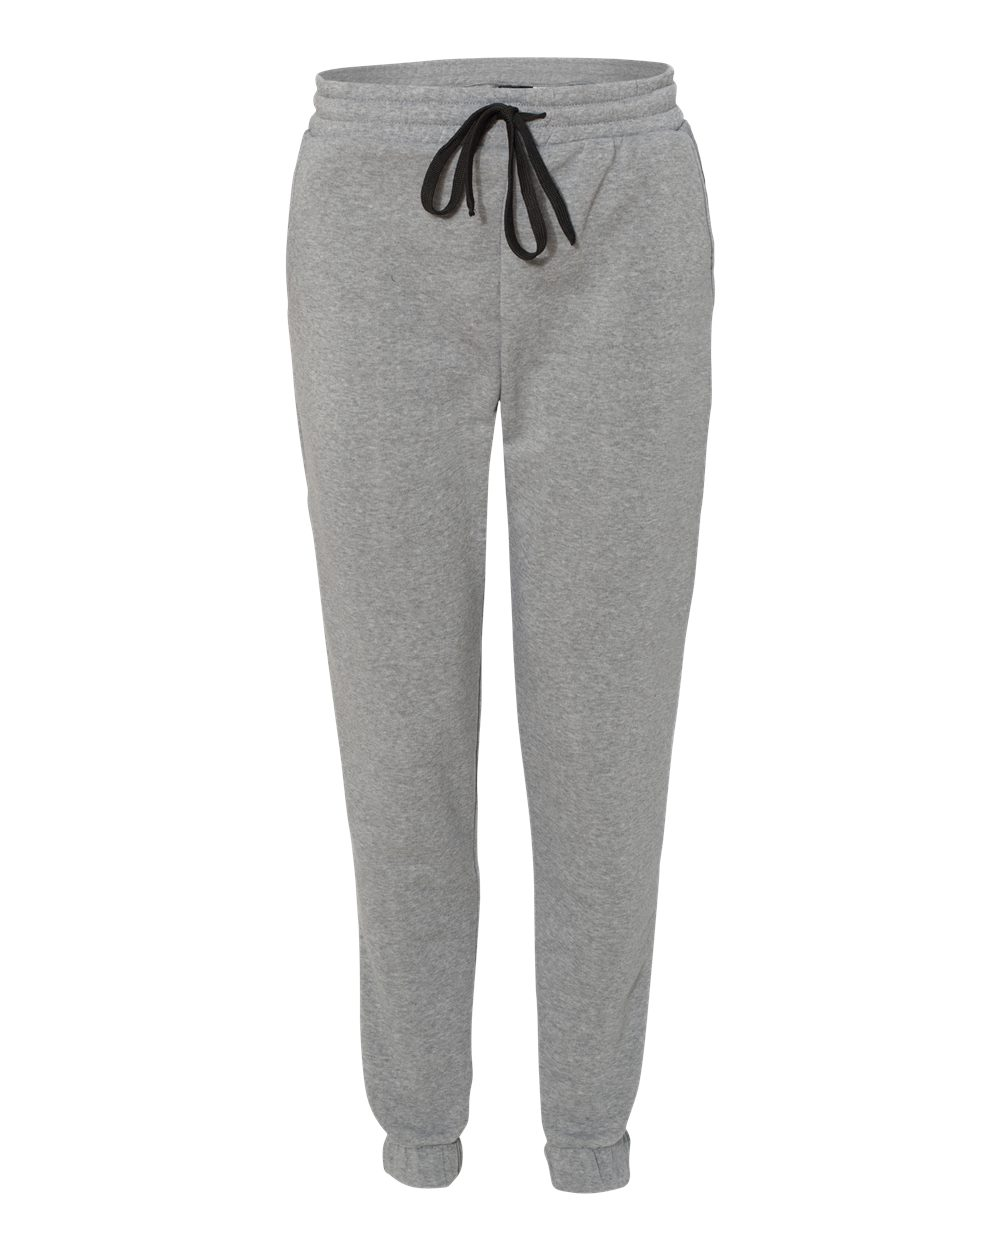 Burnside-Mens-Sweatpants-Fleece-Joggers-With-Pockets-8800-up-to-3XL thumbnail 12